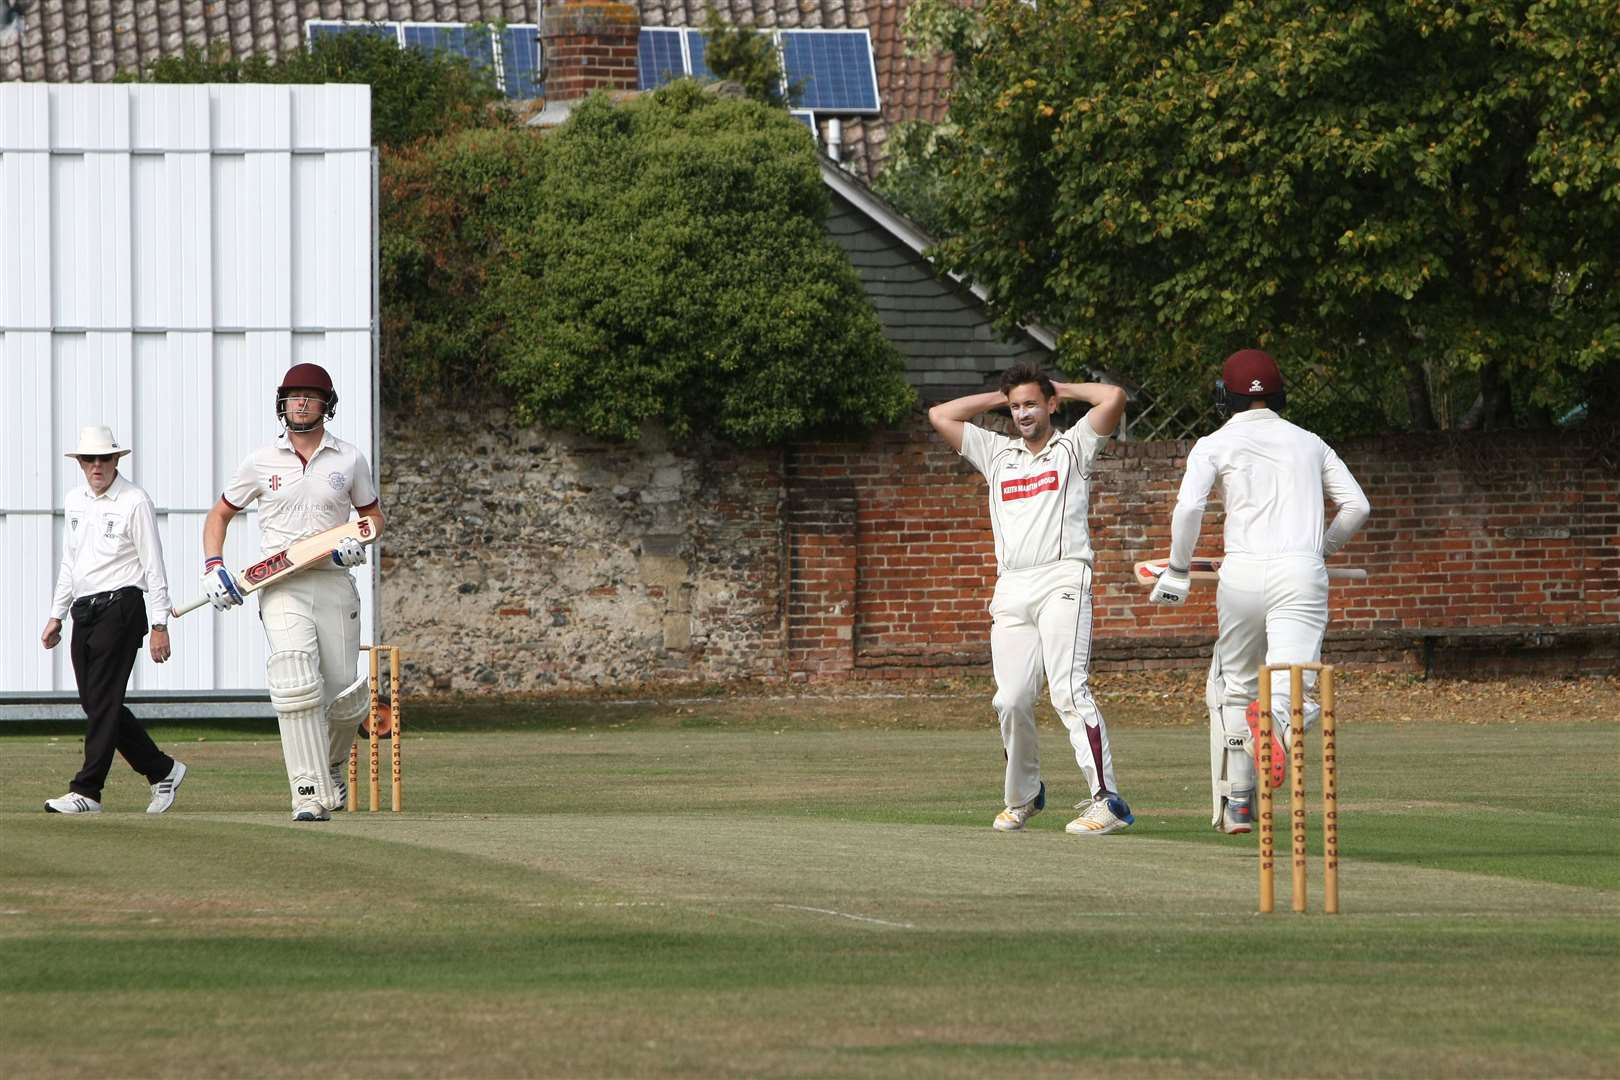 Sudbury v Swardeston cricket action. A Sudbury Appeal is turned down.. (15968439)